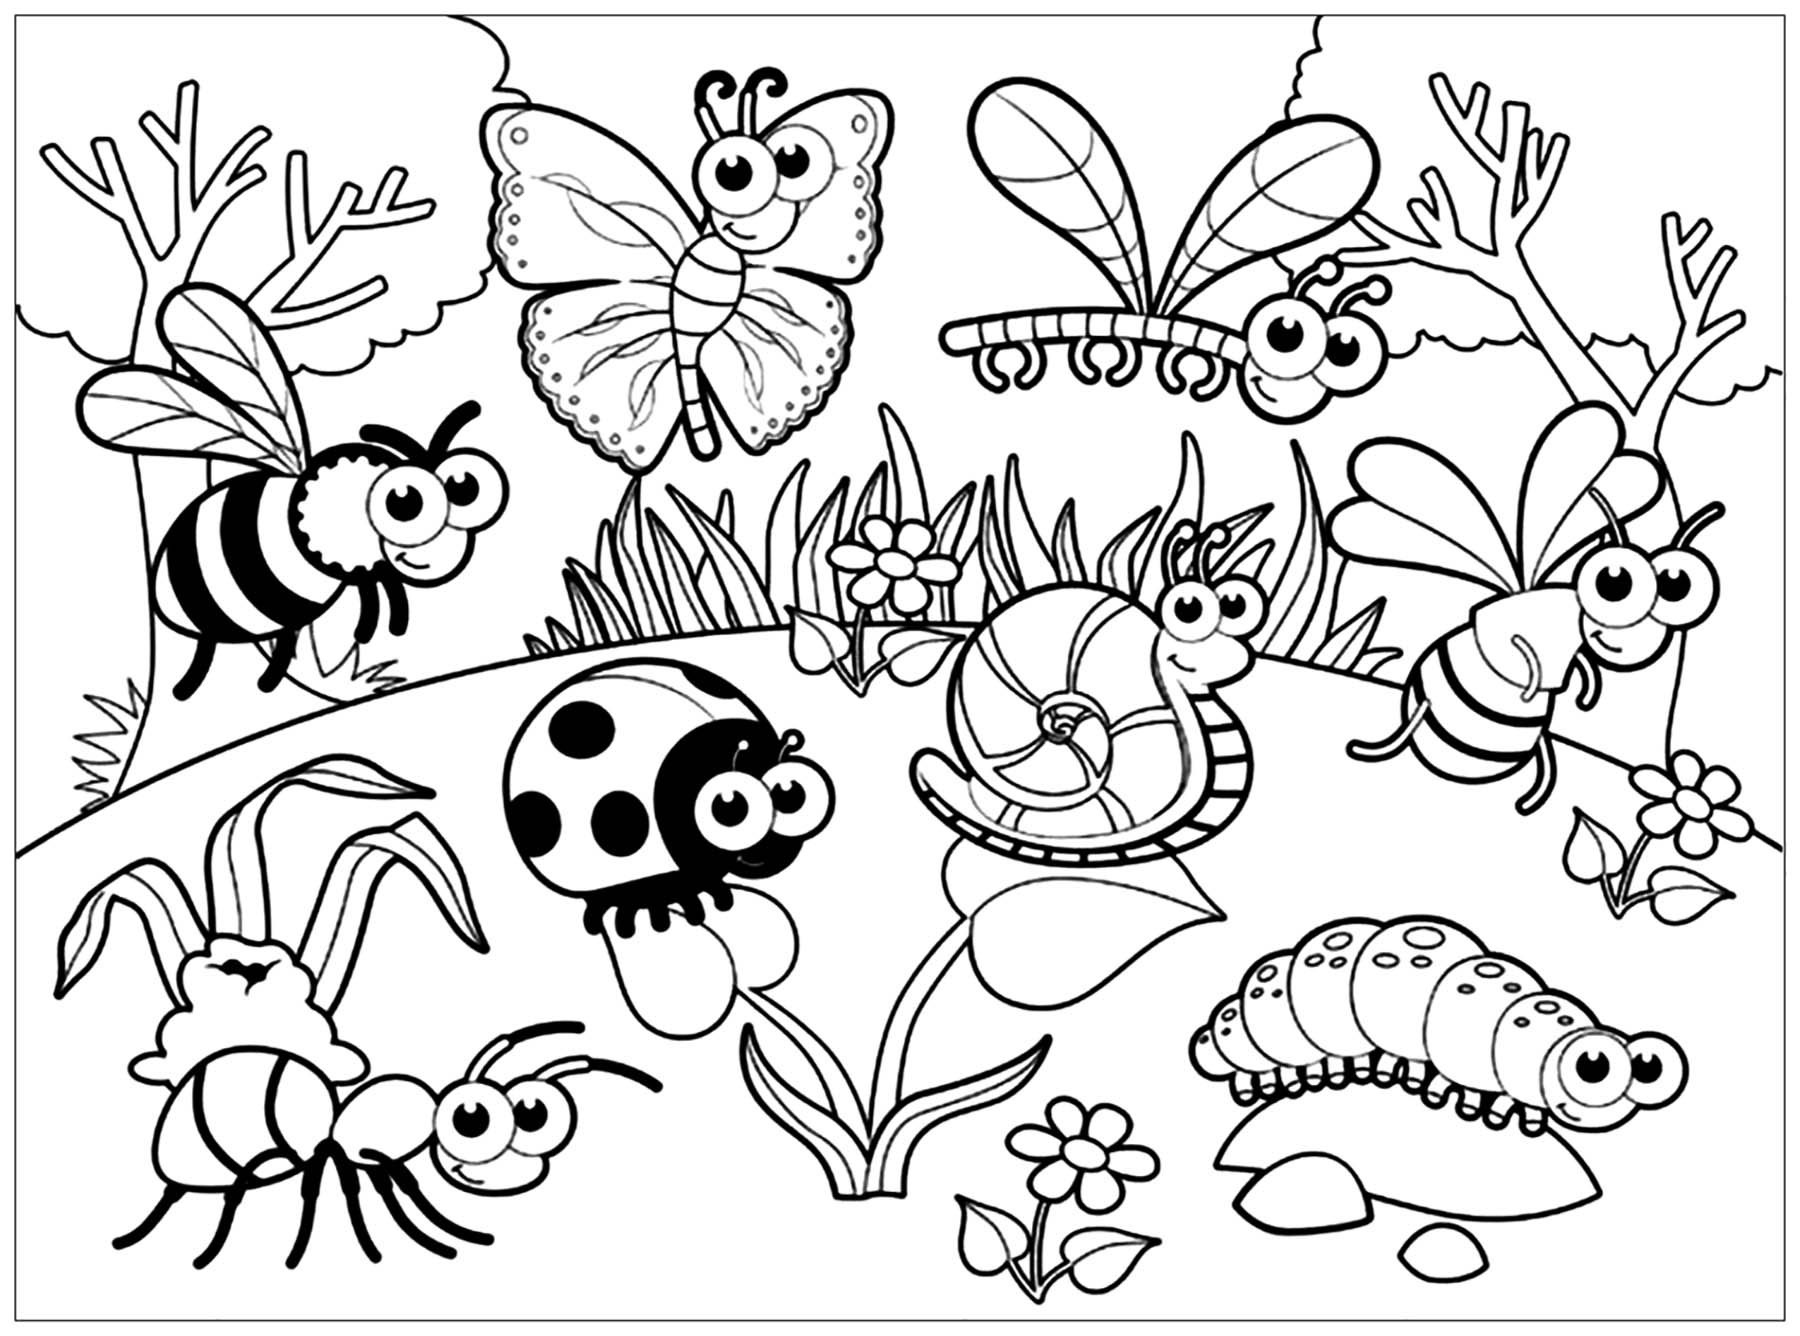 bug pictures to color free printable bug coloring pages for kids pictures color bug to